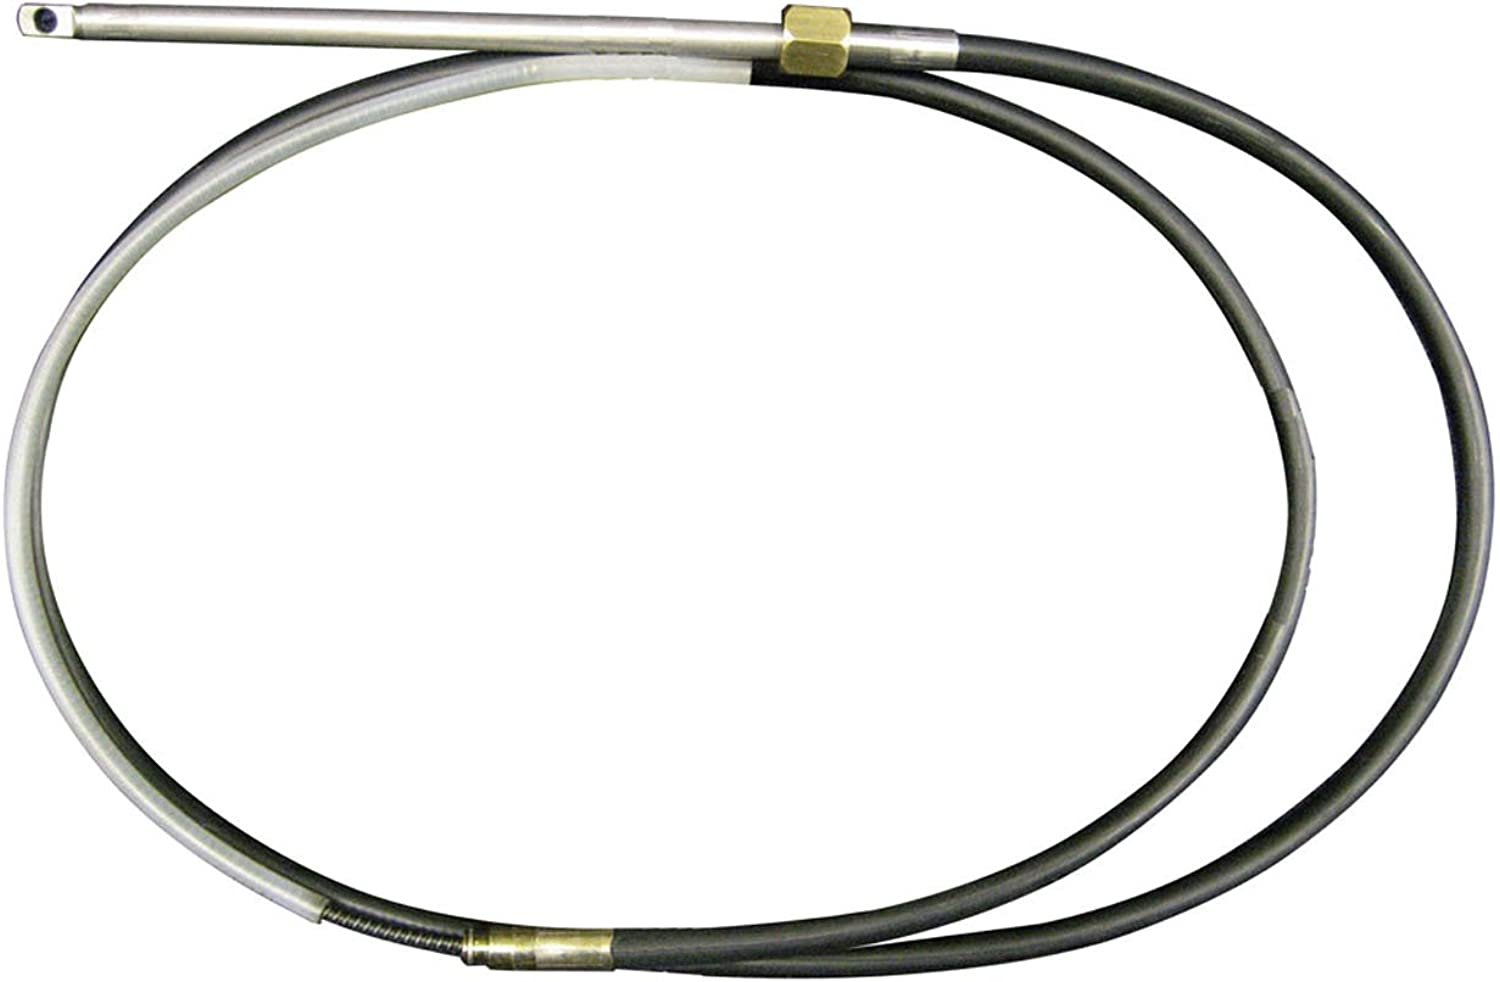 Uflex M66X13 redary Replacement Steering Cable, 13'